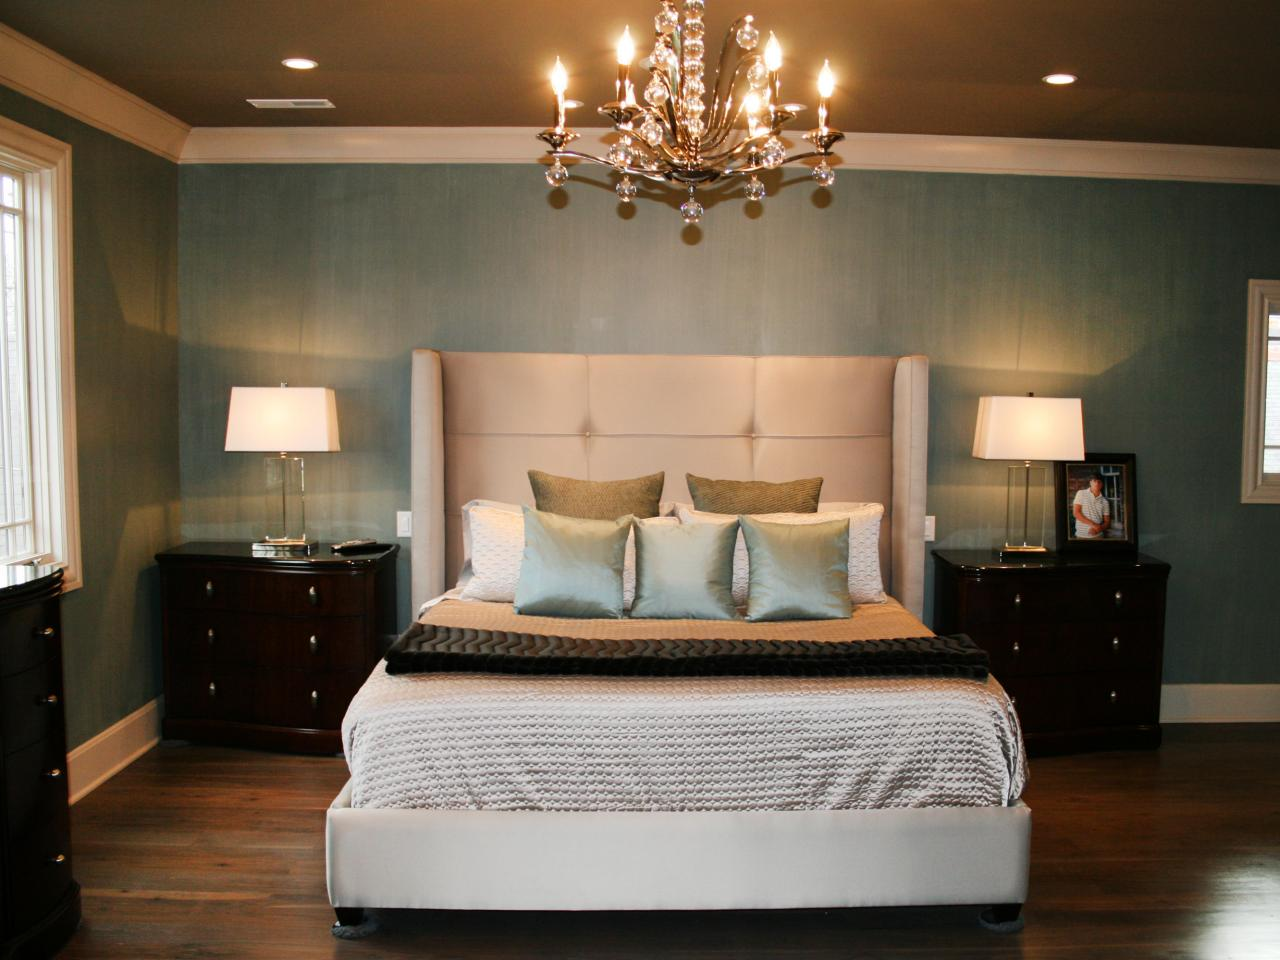 10 warm neutral headboards bedrooms bedroom decorating ideas hgtv Blue and tan bedroom decorating ideas